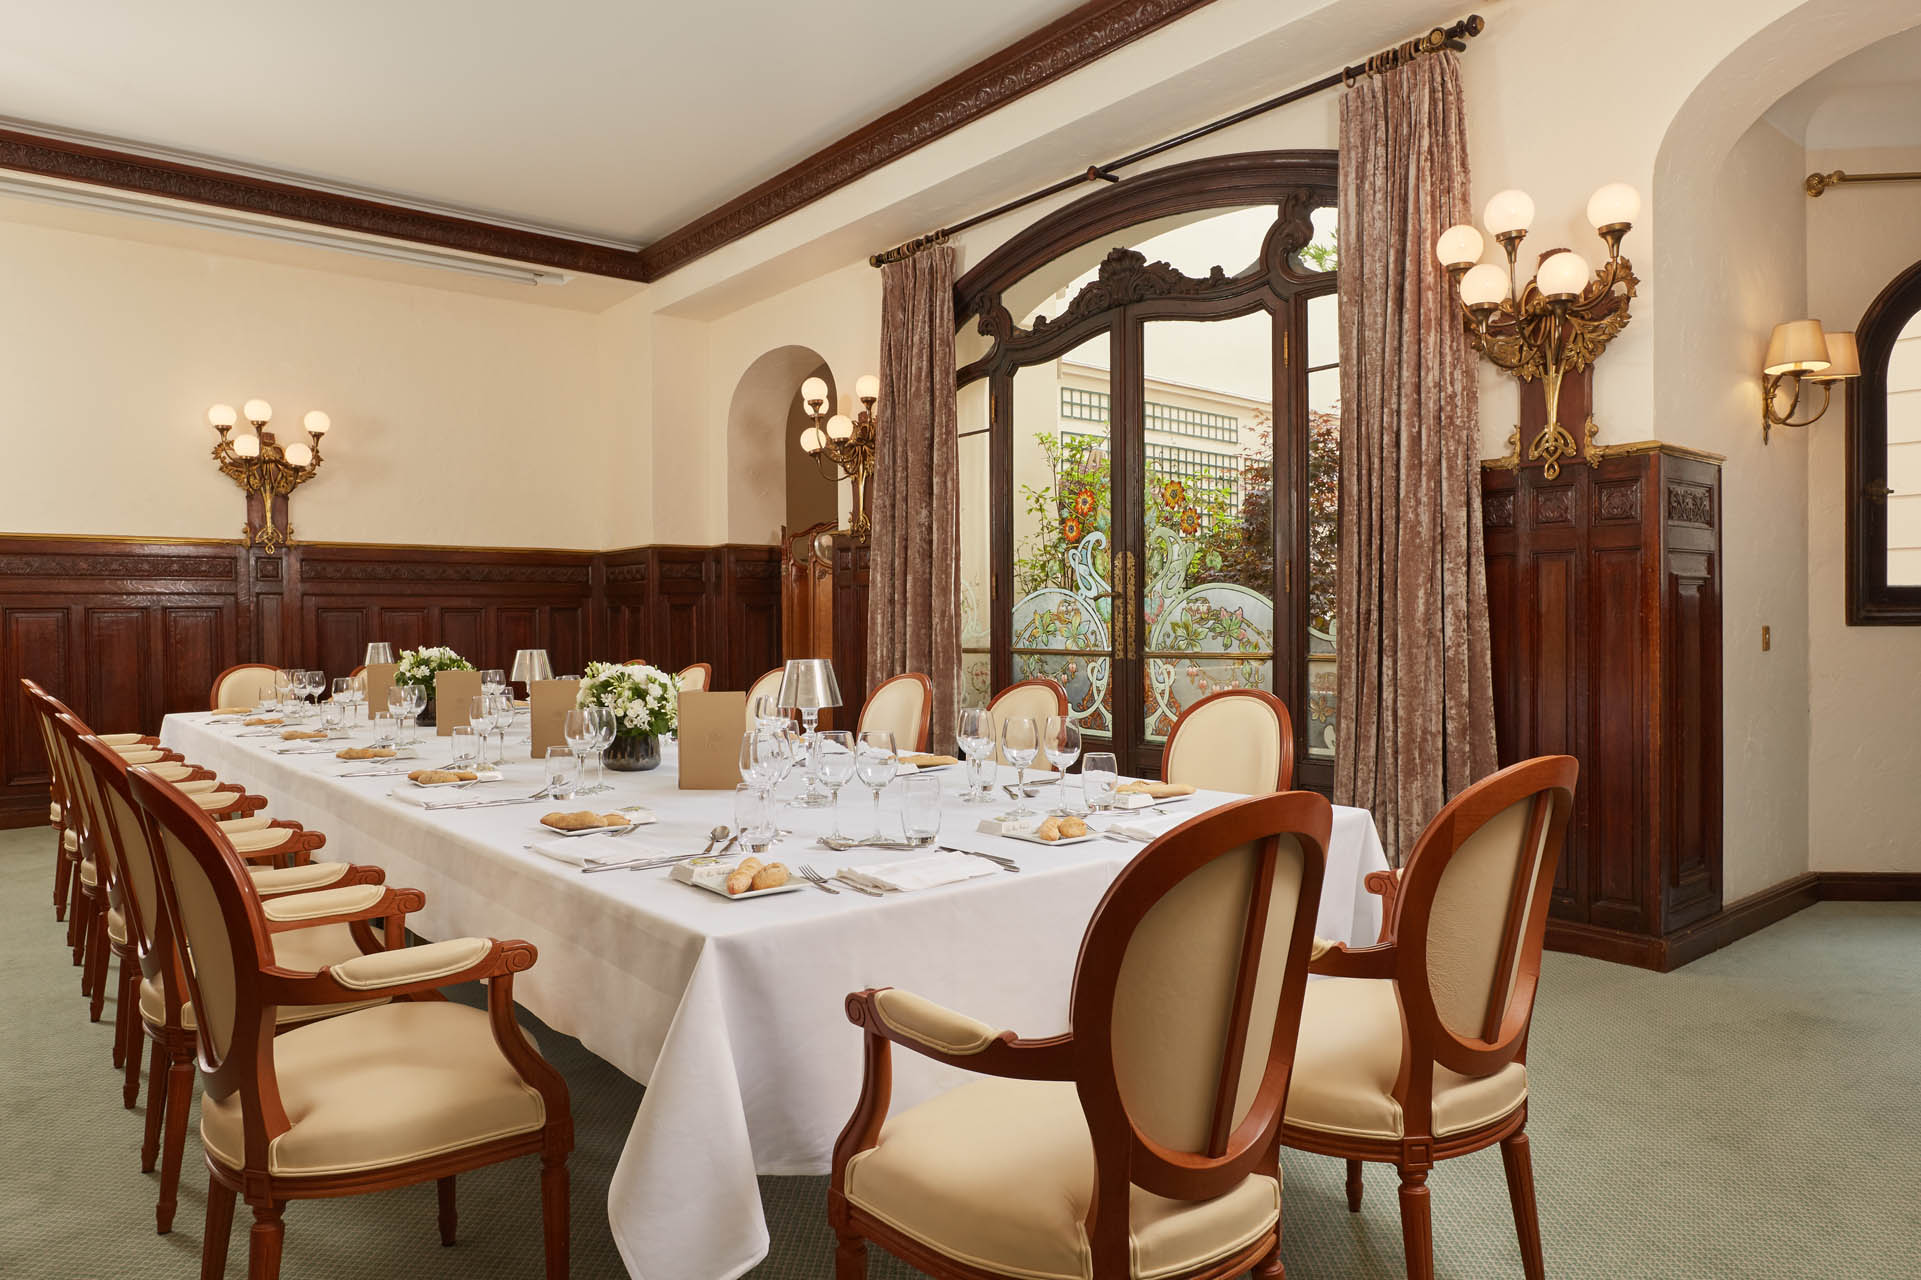 235/Seminaire/Salon St Honor - Lunch-Dinner - CHotel Regina Paris.jpg